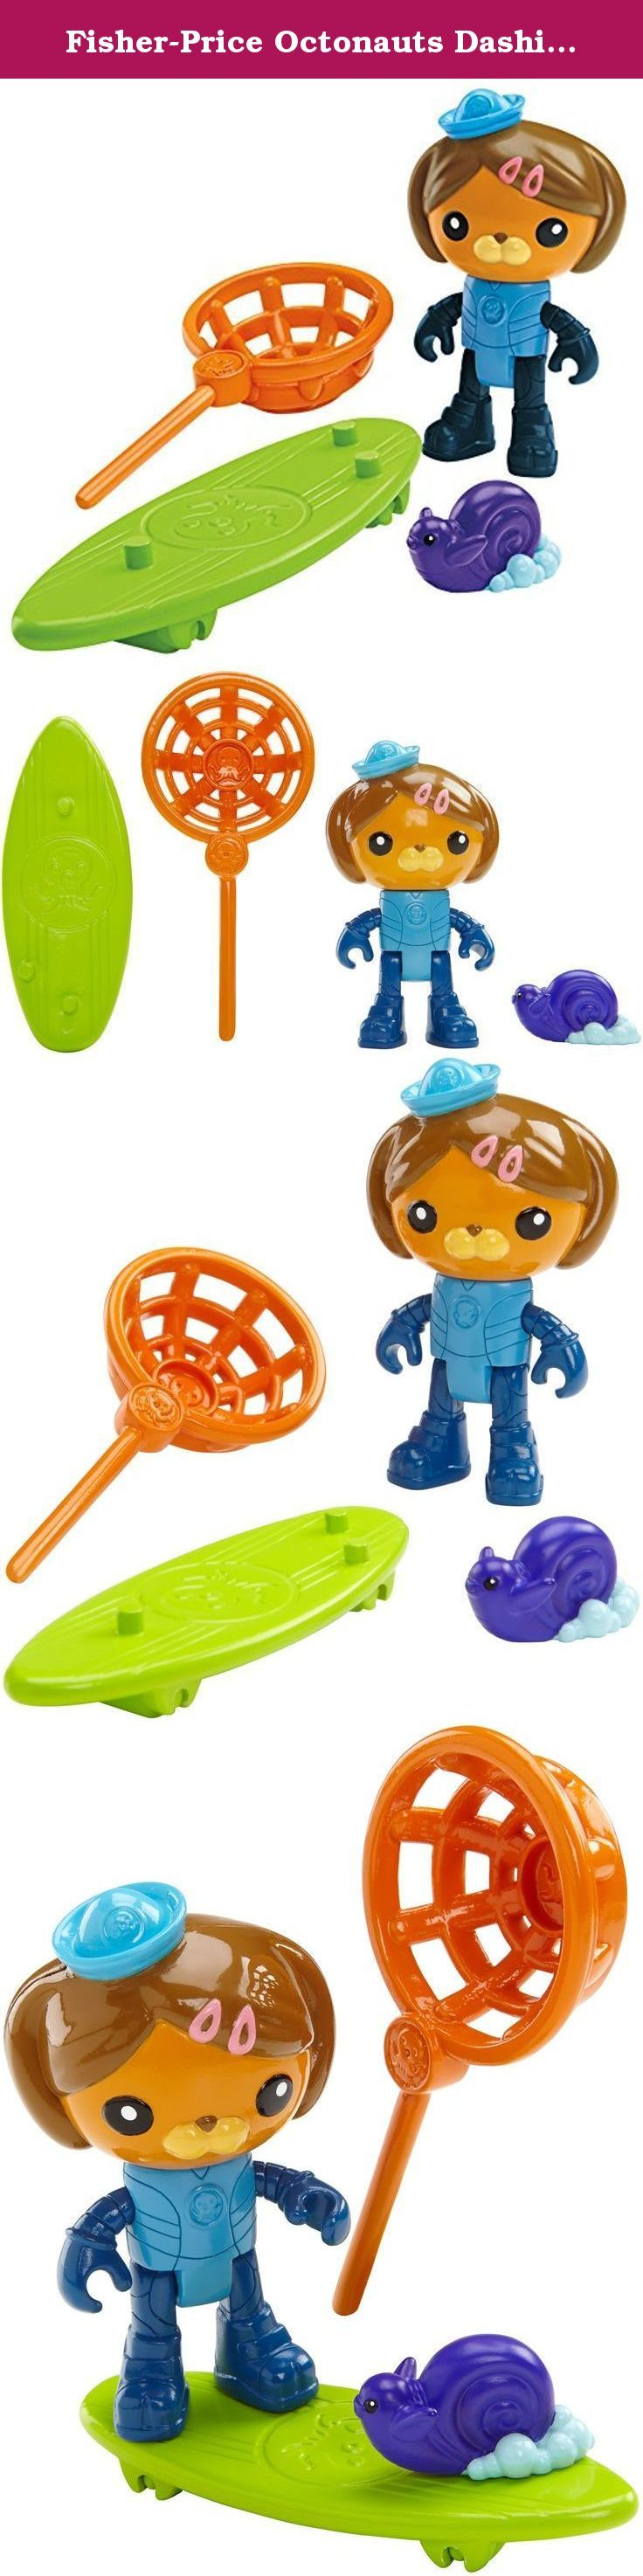 Fisher-Price Octonauts Dashi and The Surfer Snail. When rough water sweeps a surfing snail out to sea, dashi grabs her board and uses her surfing skills to ride to the rescue! Dashi comes with a surfer snail, rescue net and surfboard. Ages 3+.